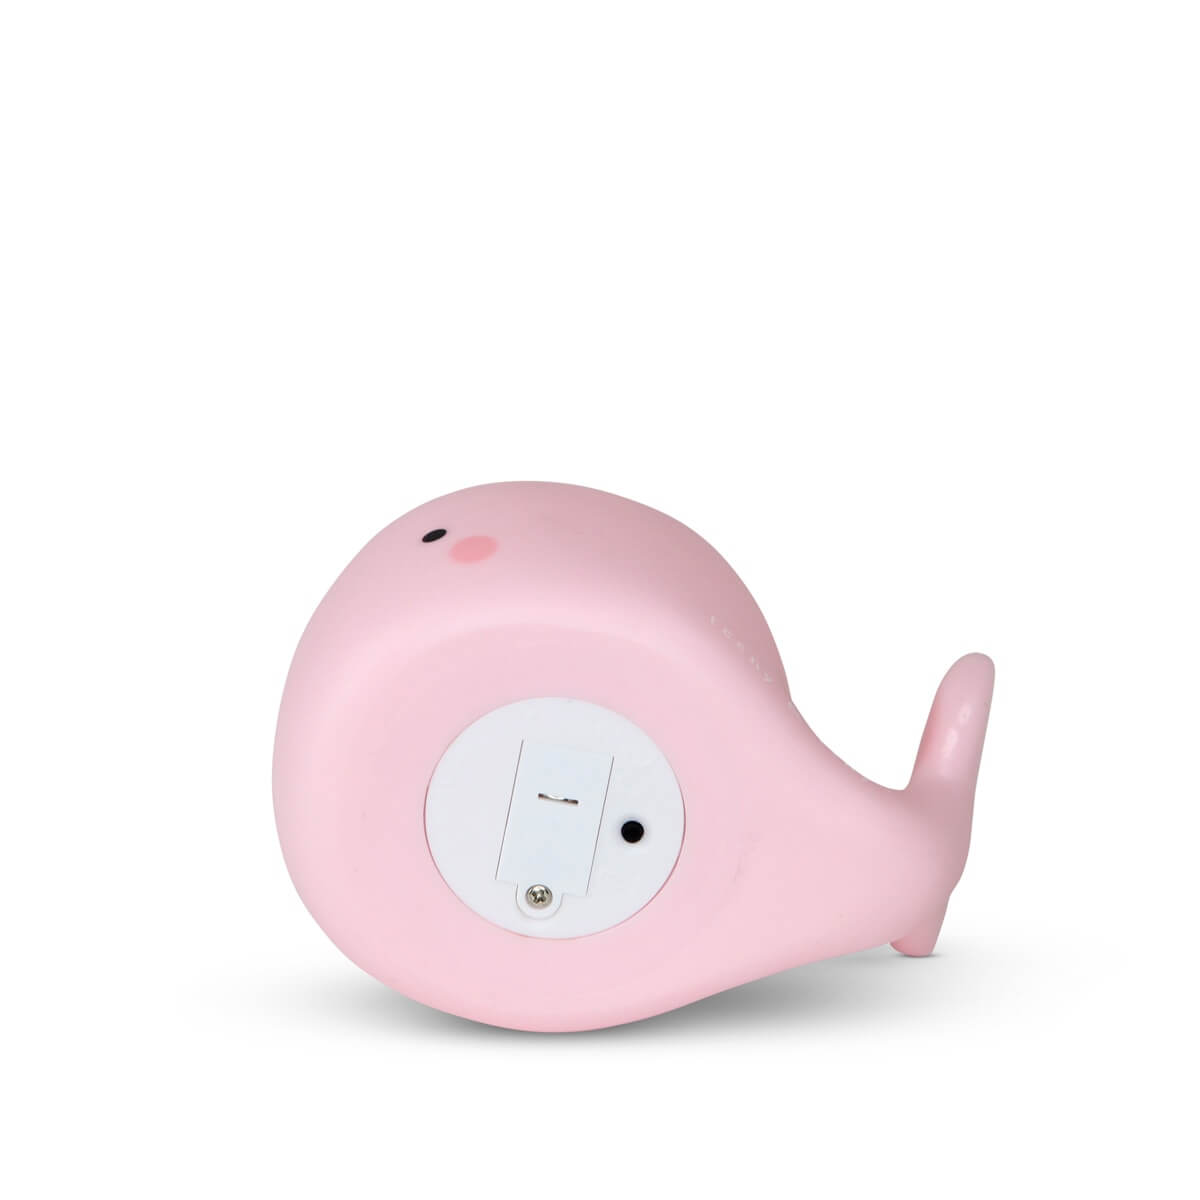 WHALE LITTLE LIGHT SMALL PINK - D'lighted